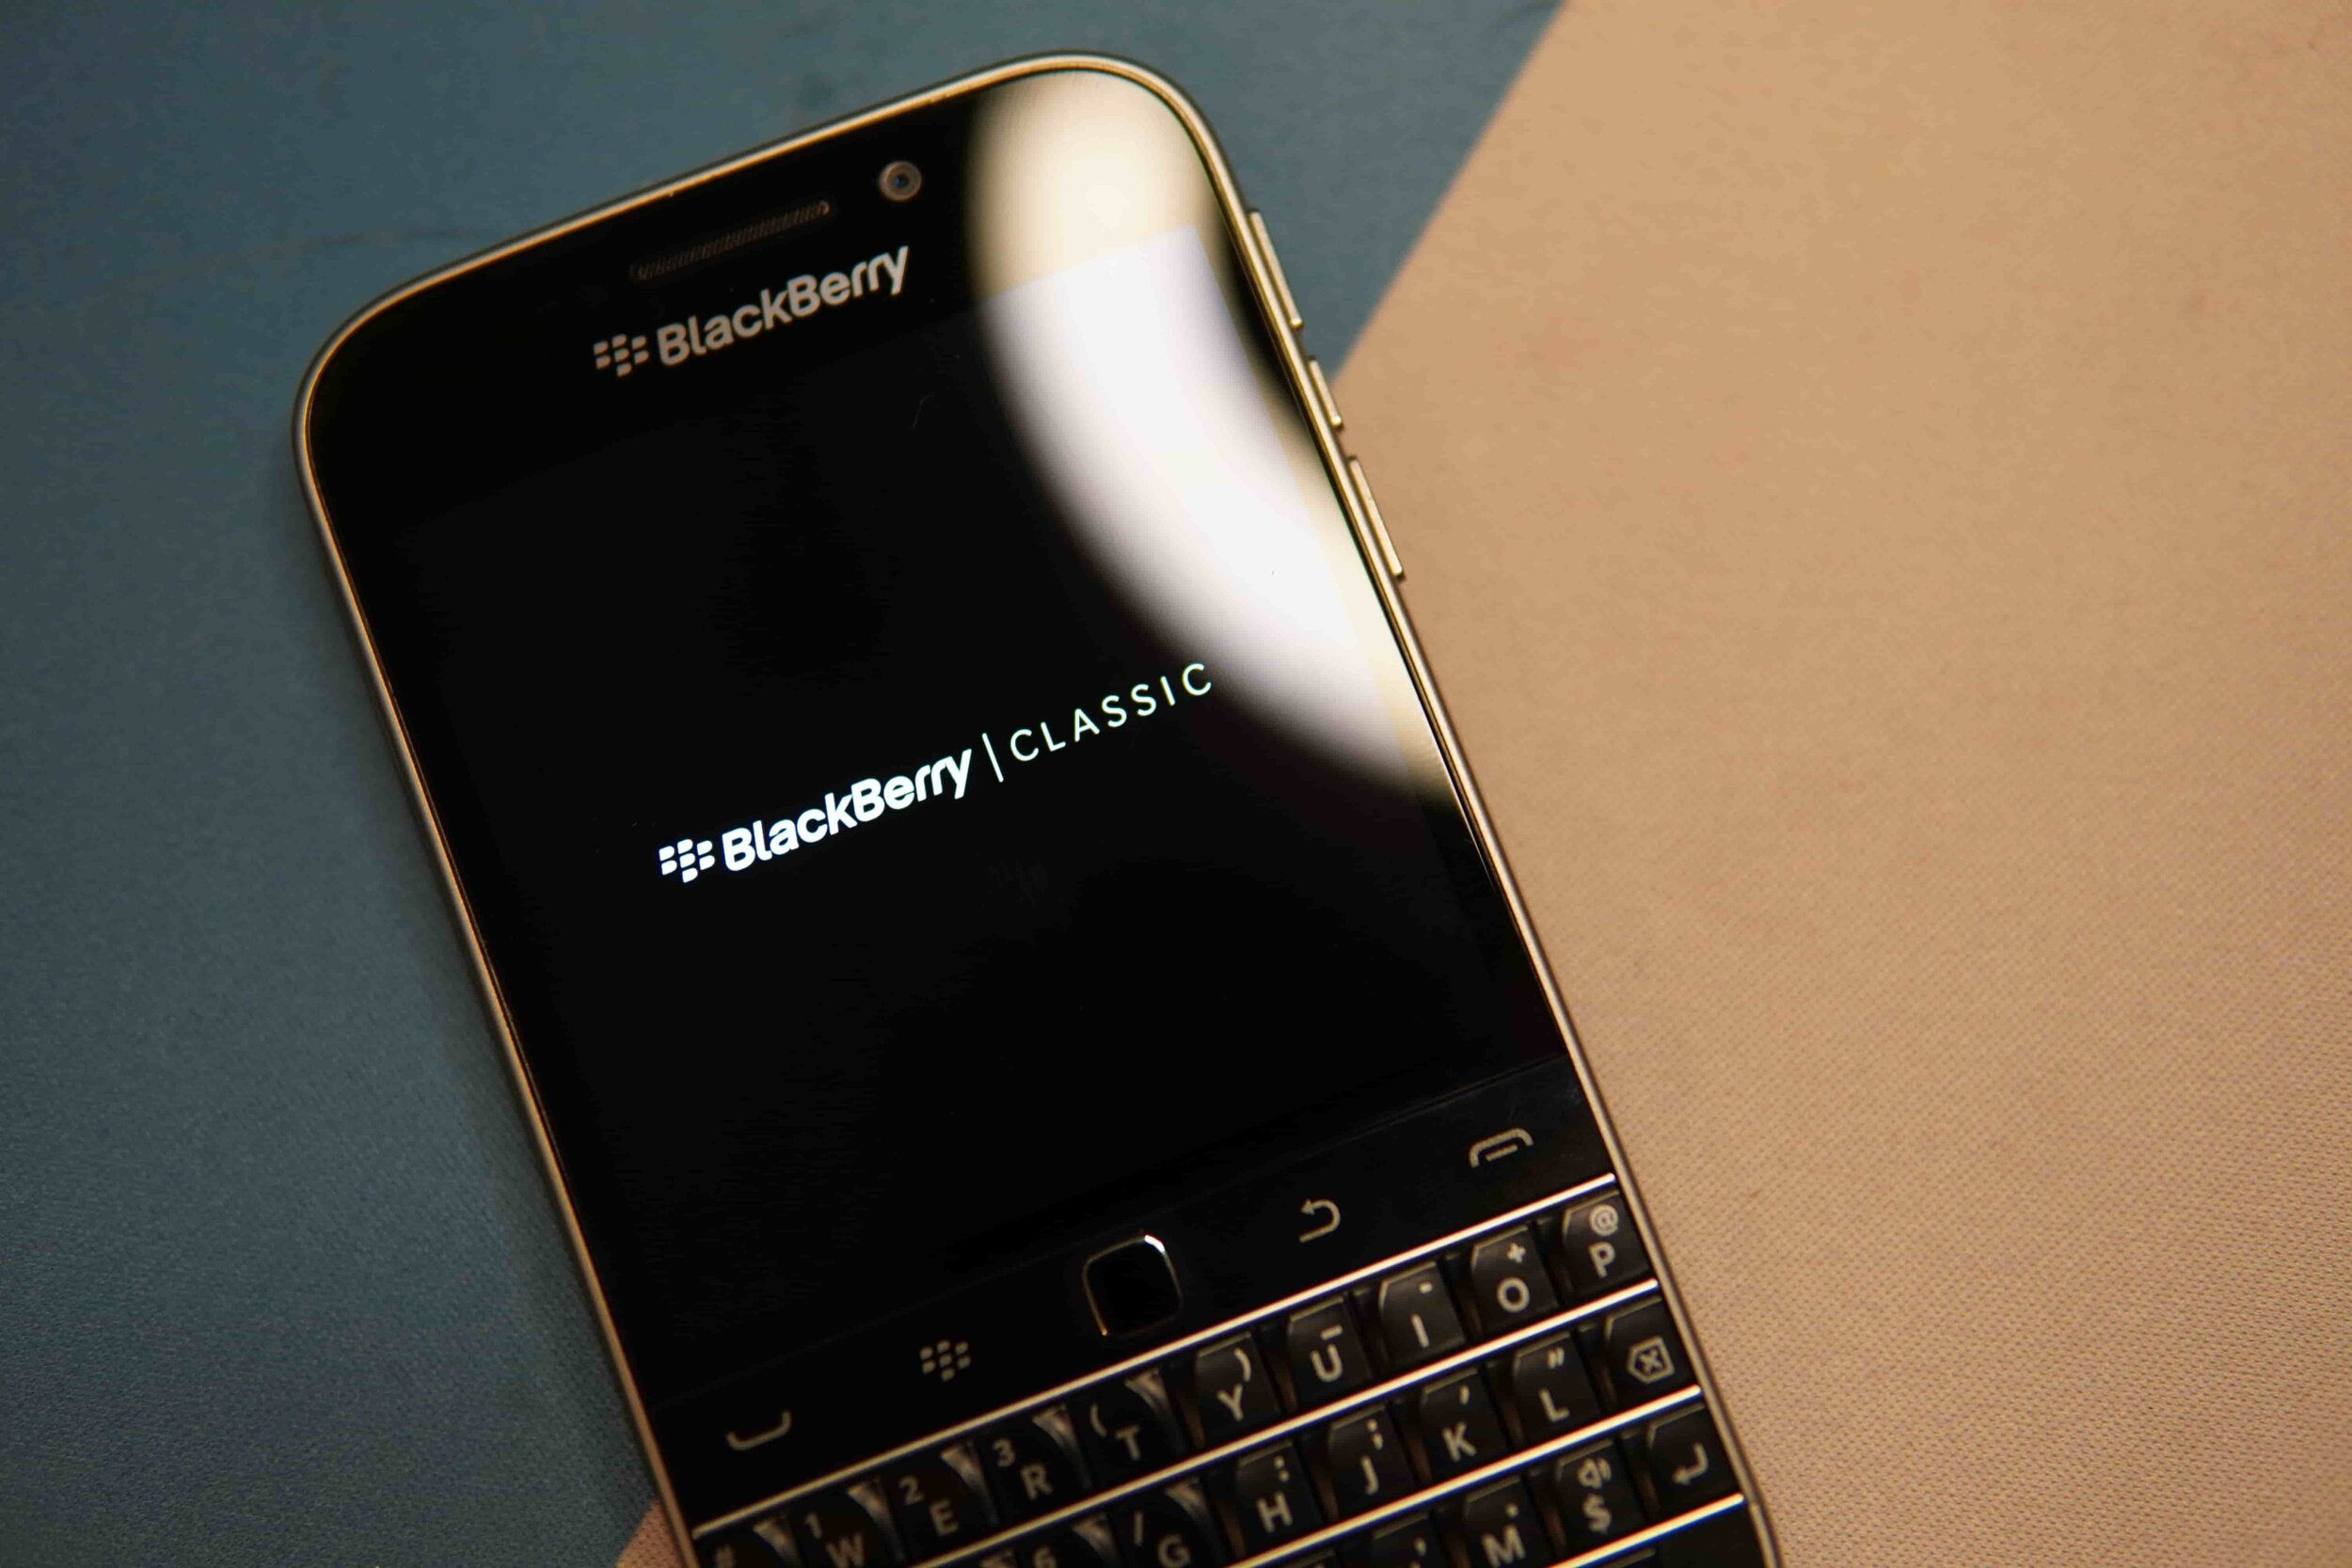 blackberry-a-lot-more-valuable-than-just-a-meme-stock.jpg